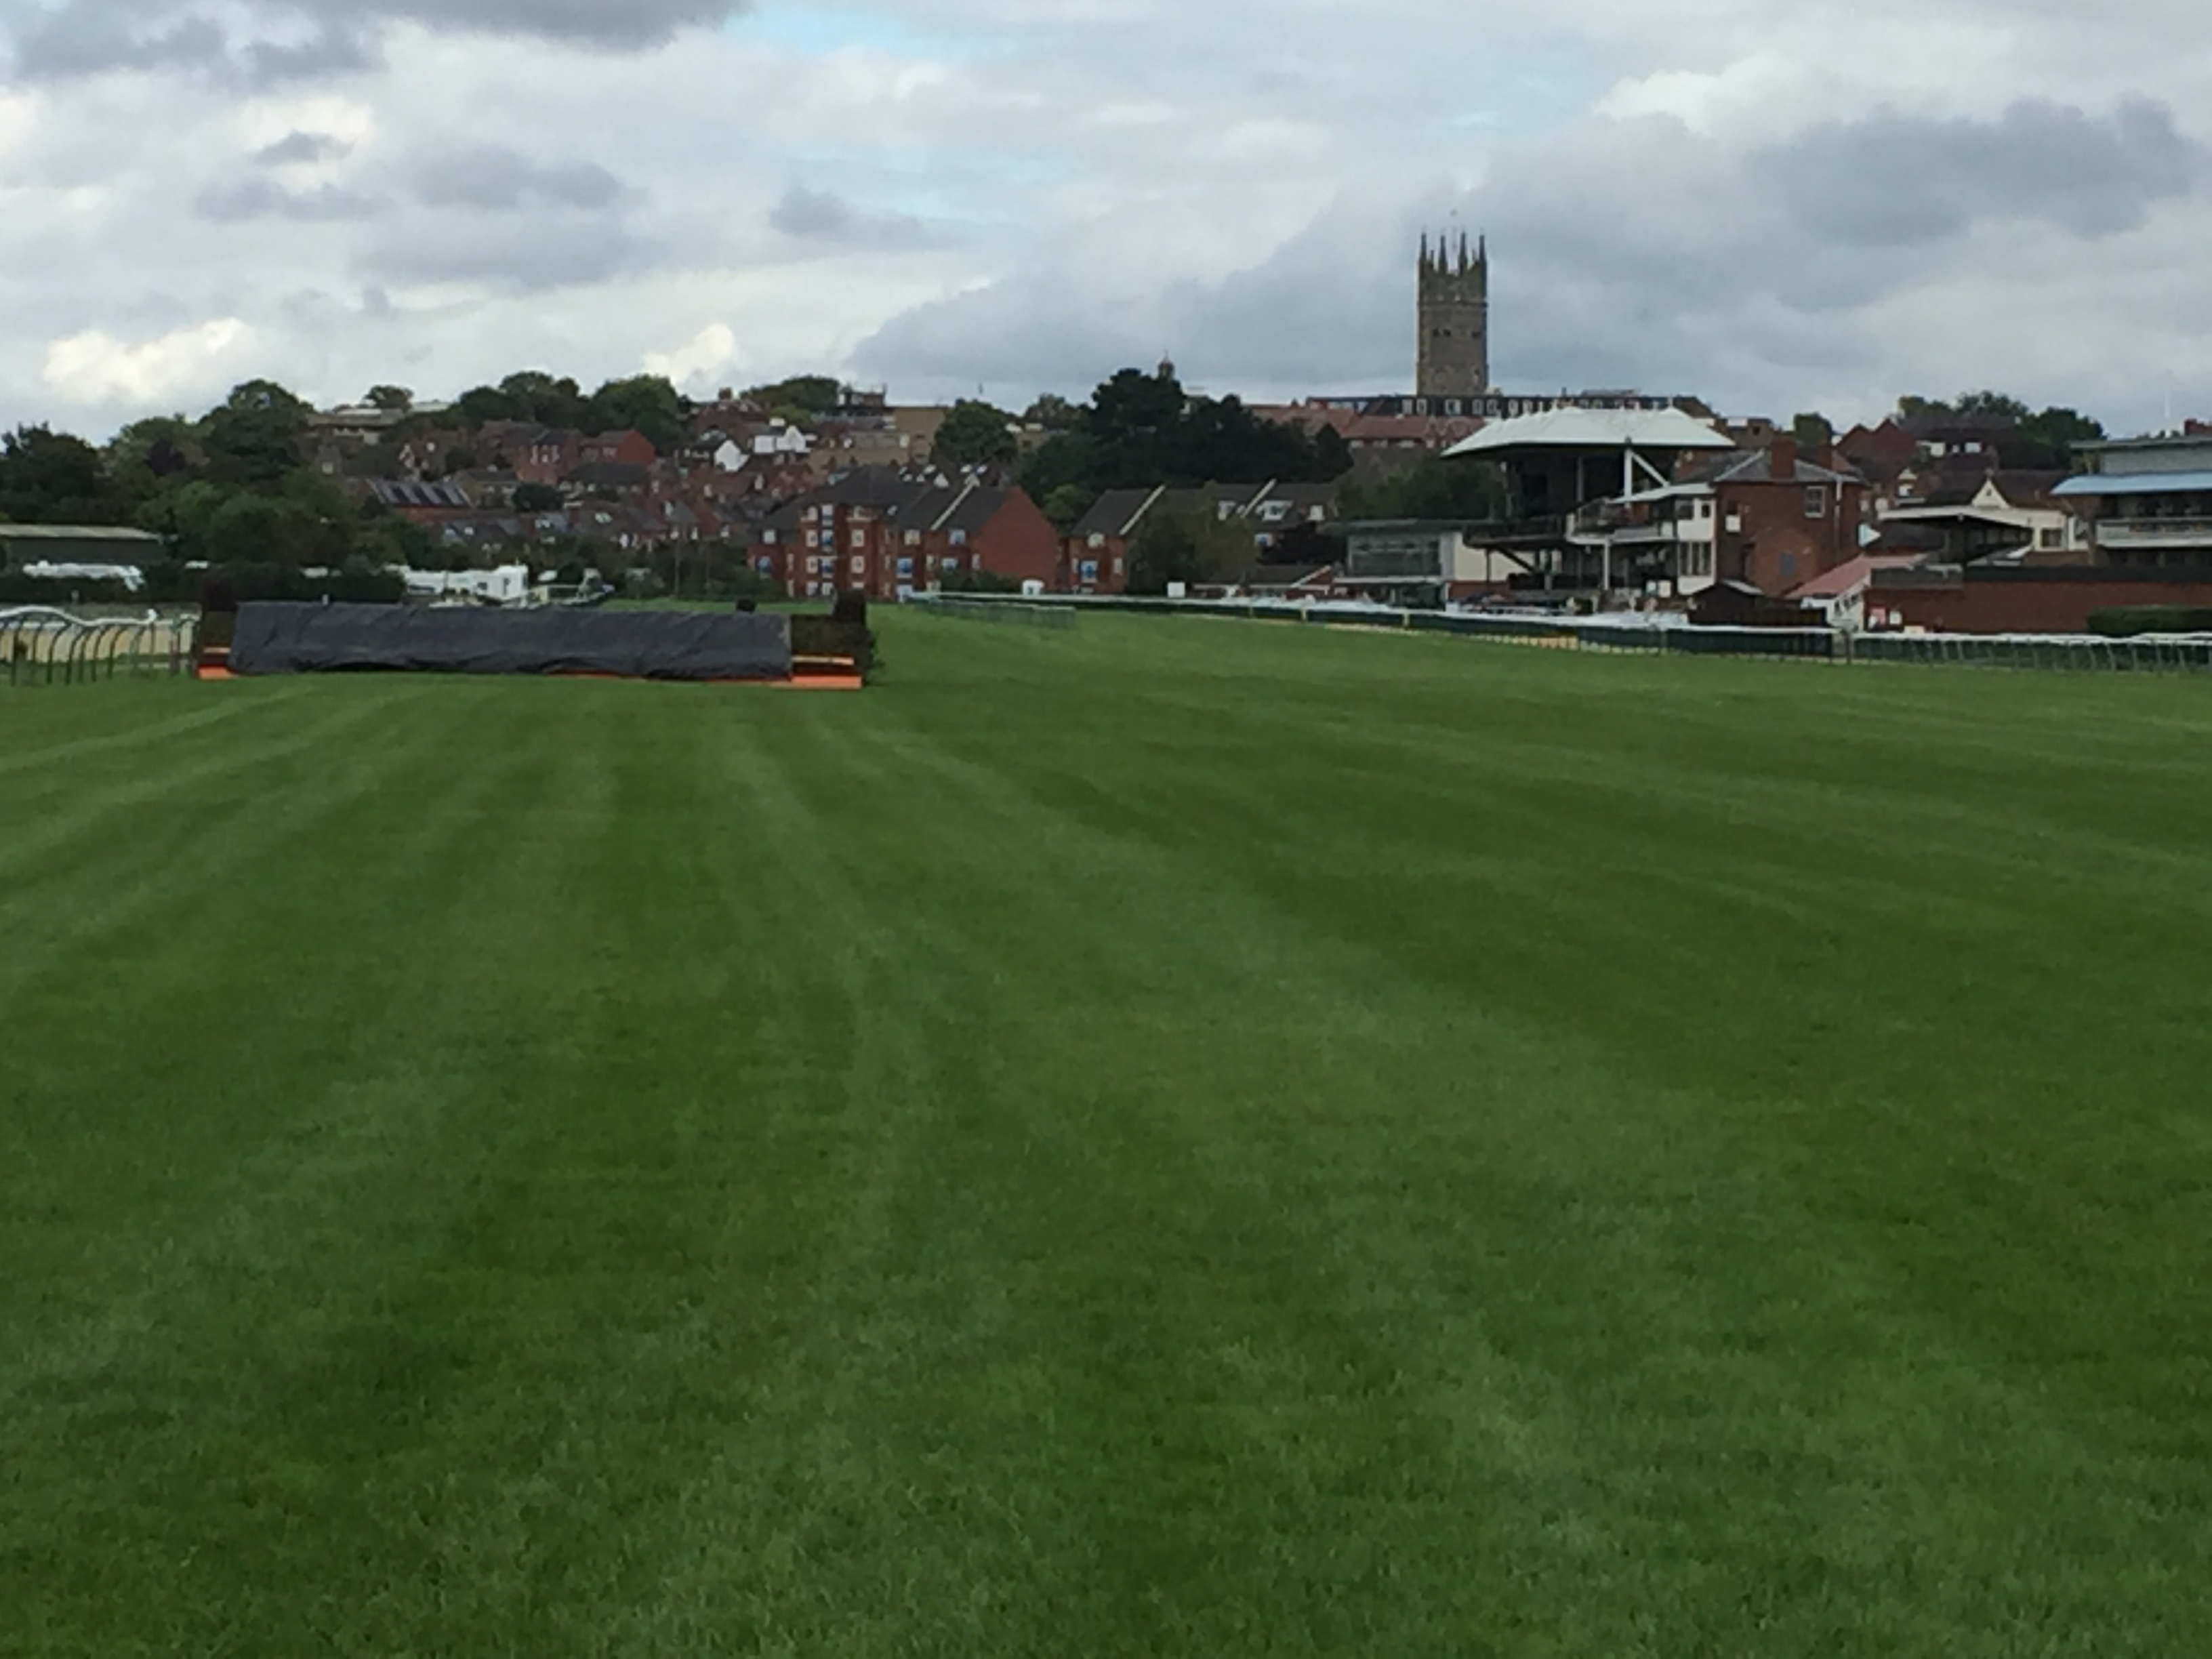 Warwick Racecourse choose ProMaster 79 to deliver results in challenging conditions